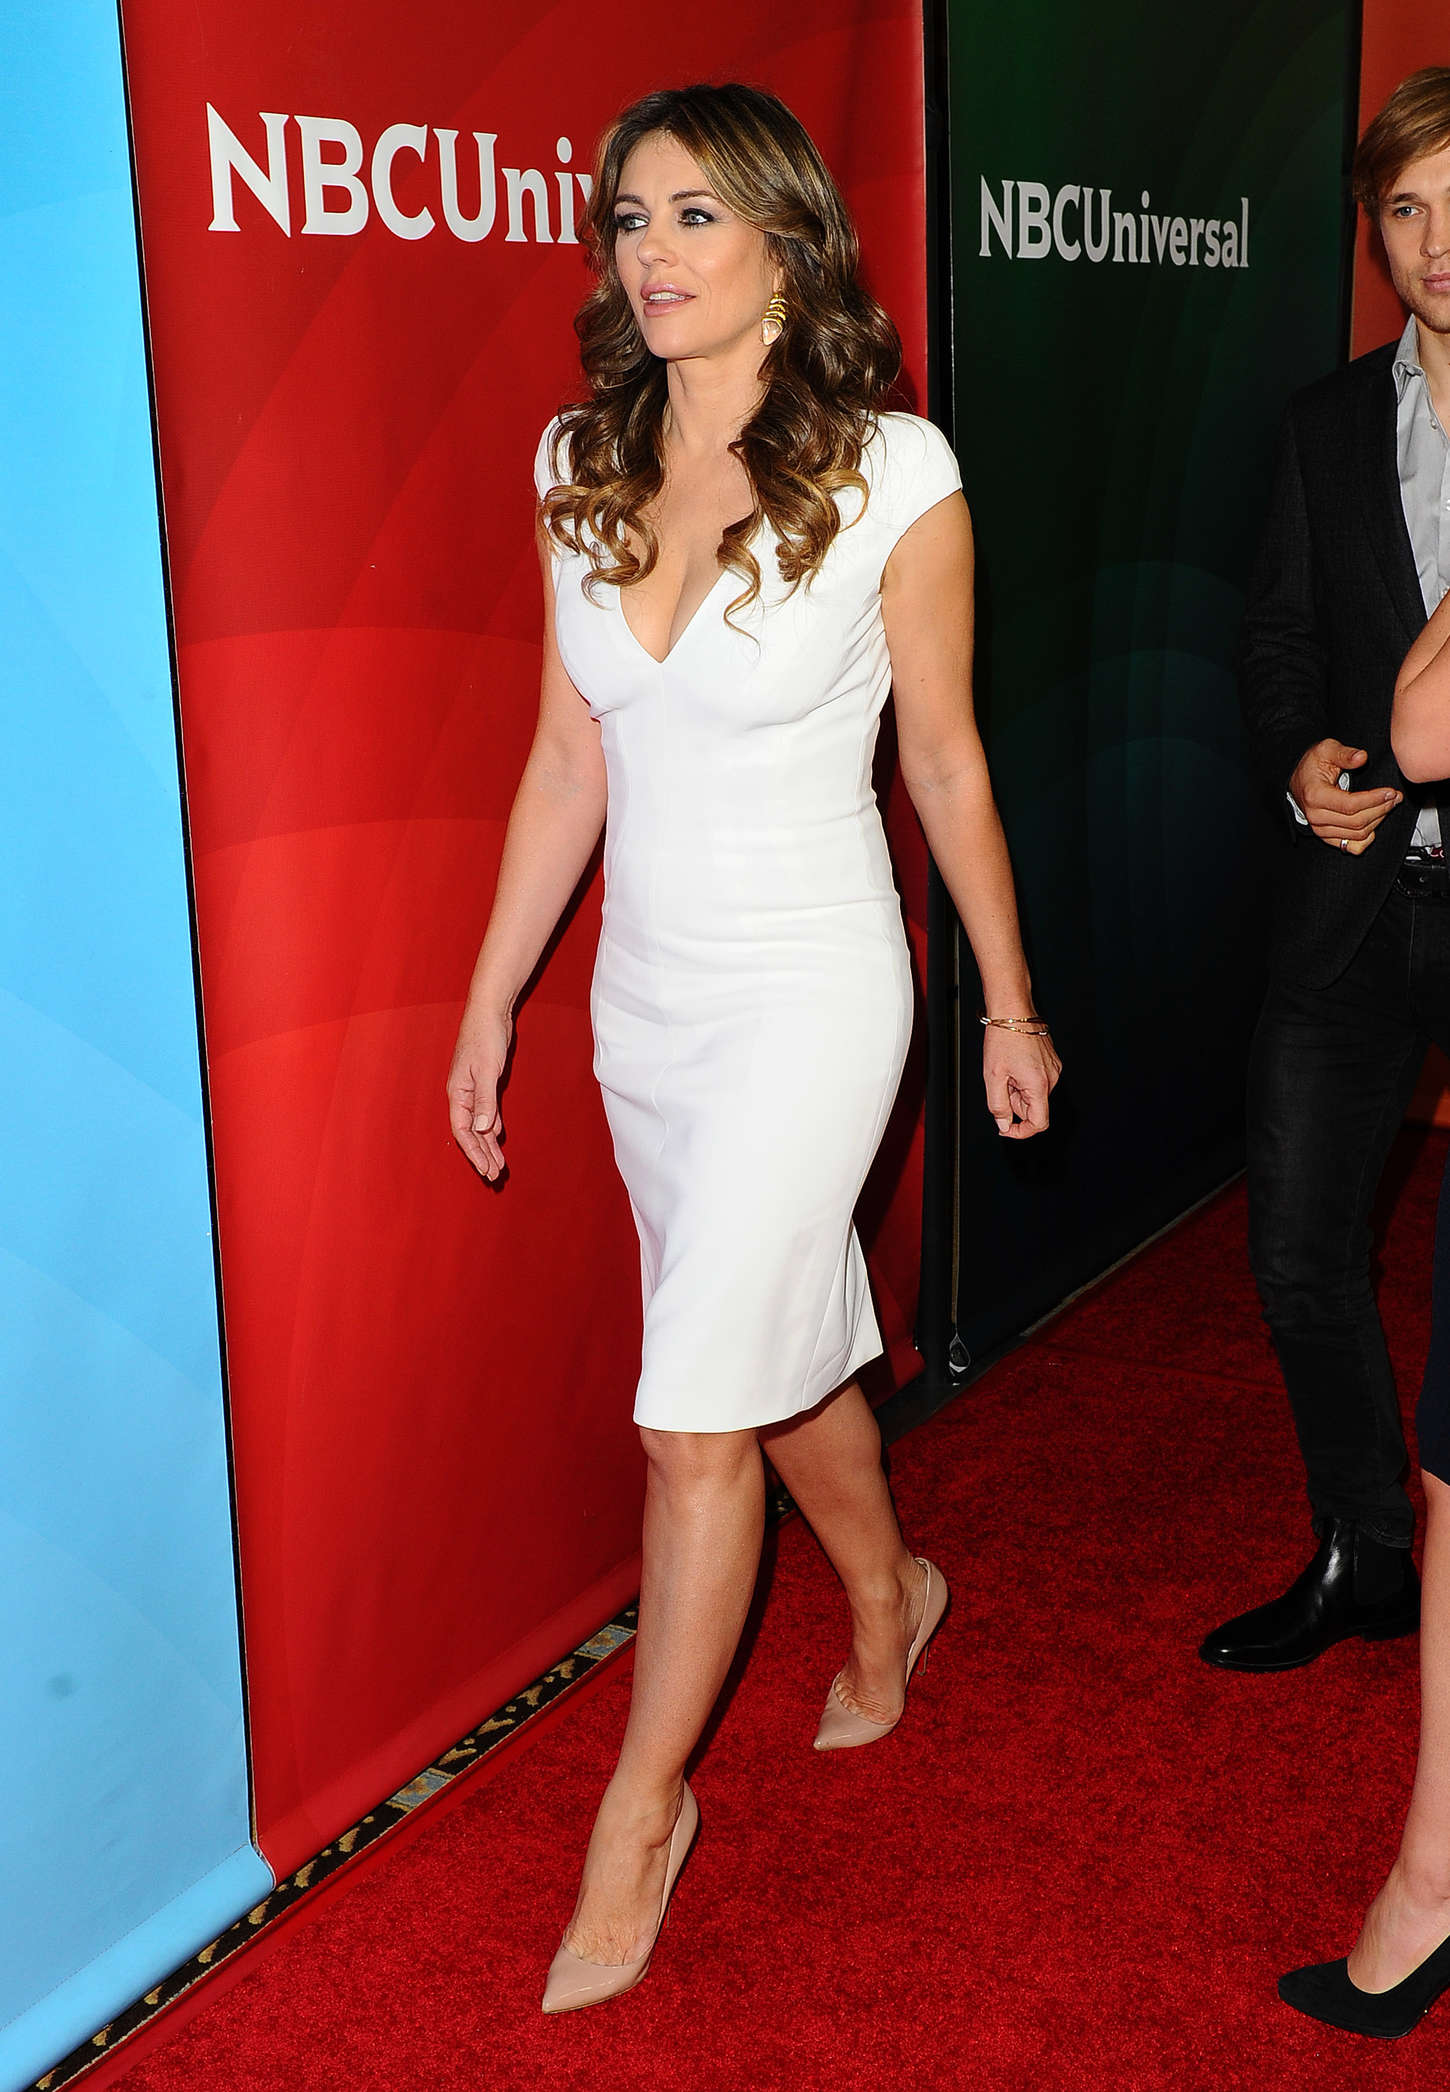 Elizabeth Hurley: 2015 NBCUniversal Press Tour Day 1 -18 ... Katy Perry Tour